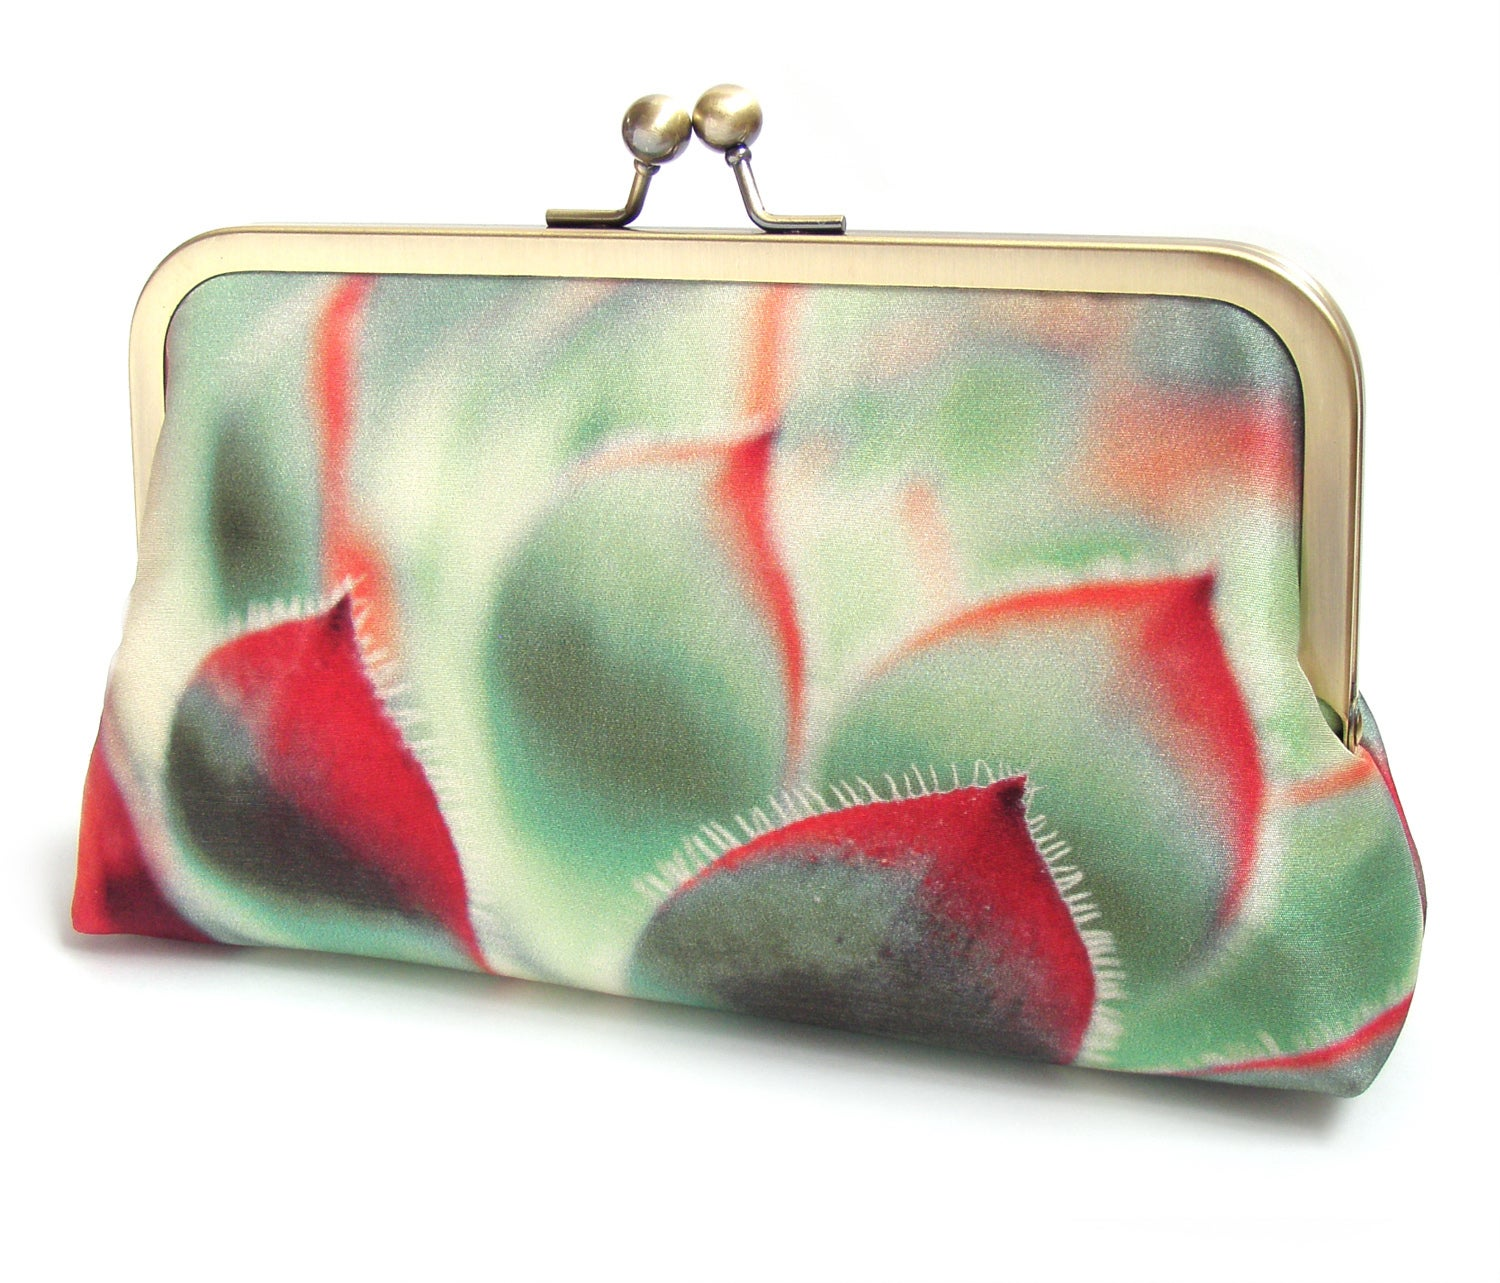 Image of Clutch bag, succulent silk purse, red and green cacti bag